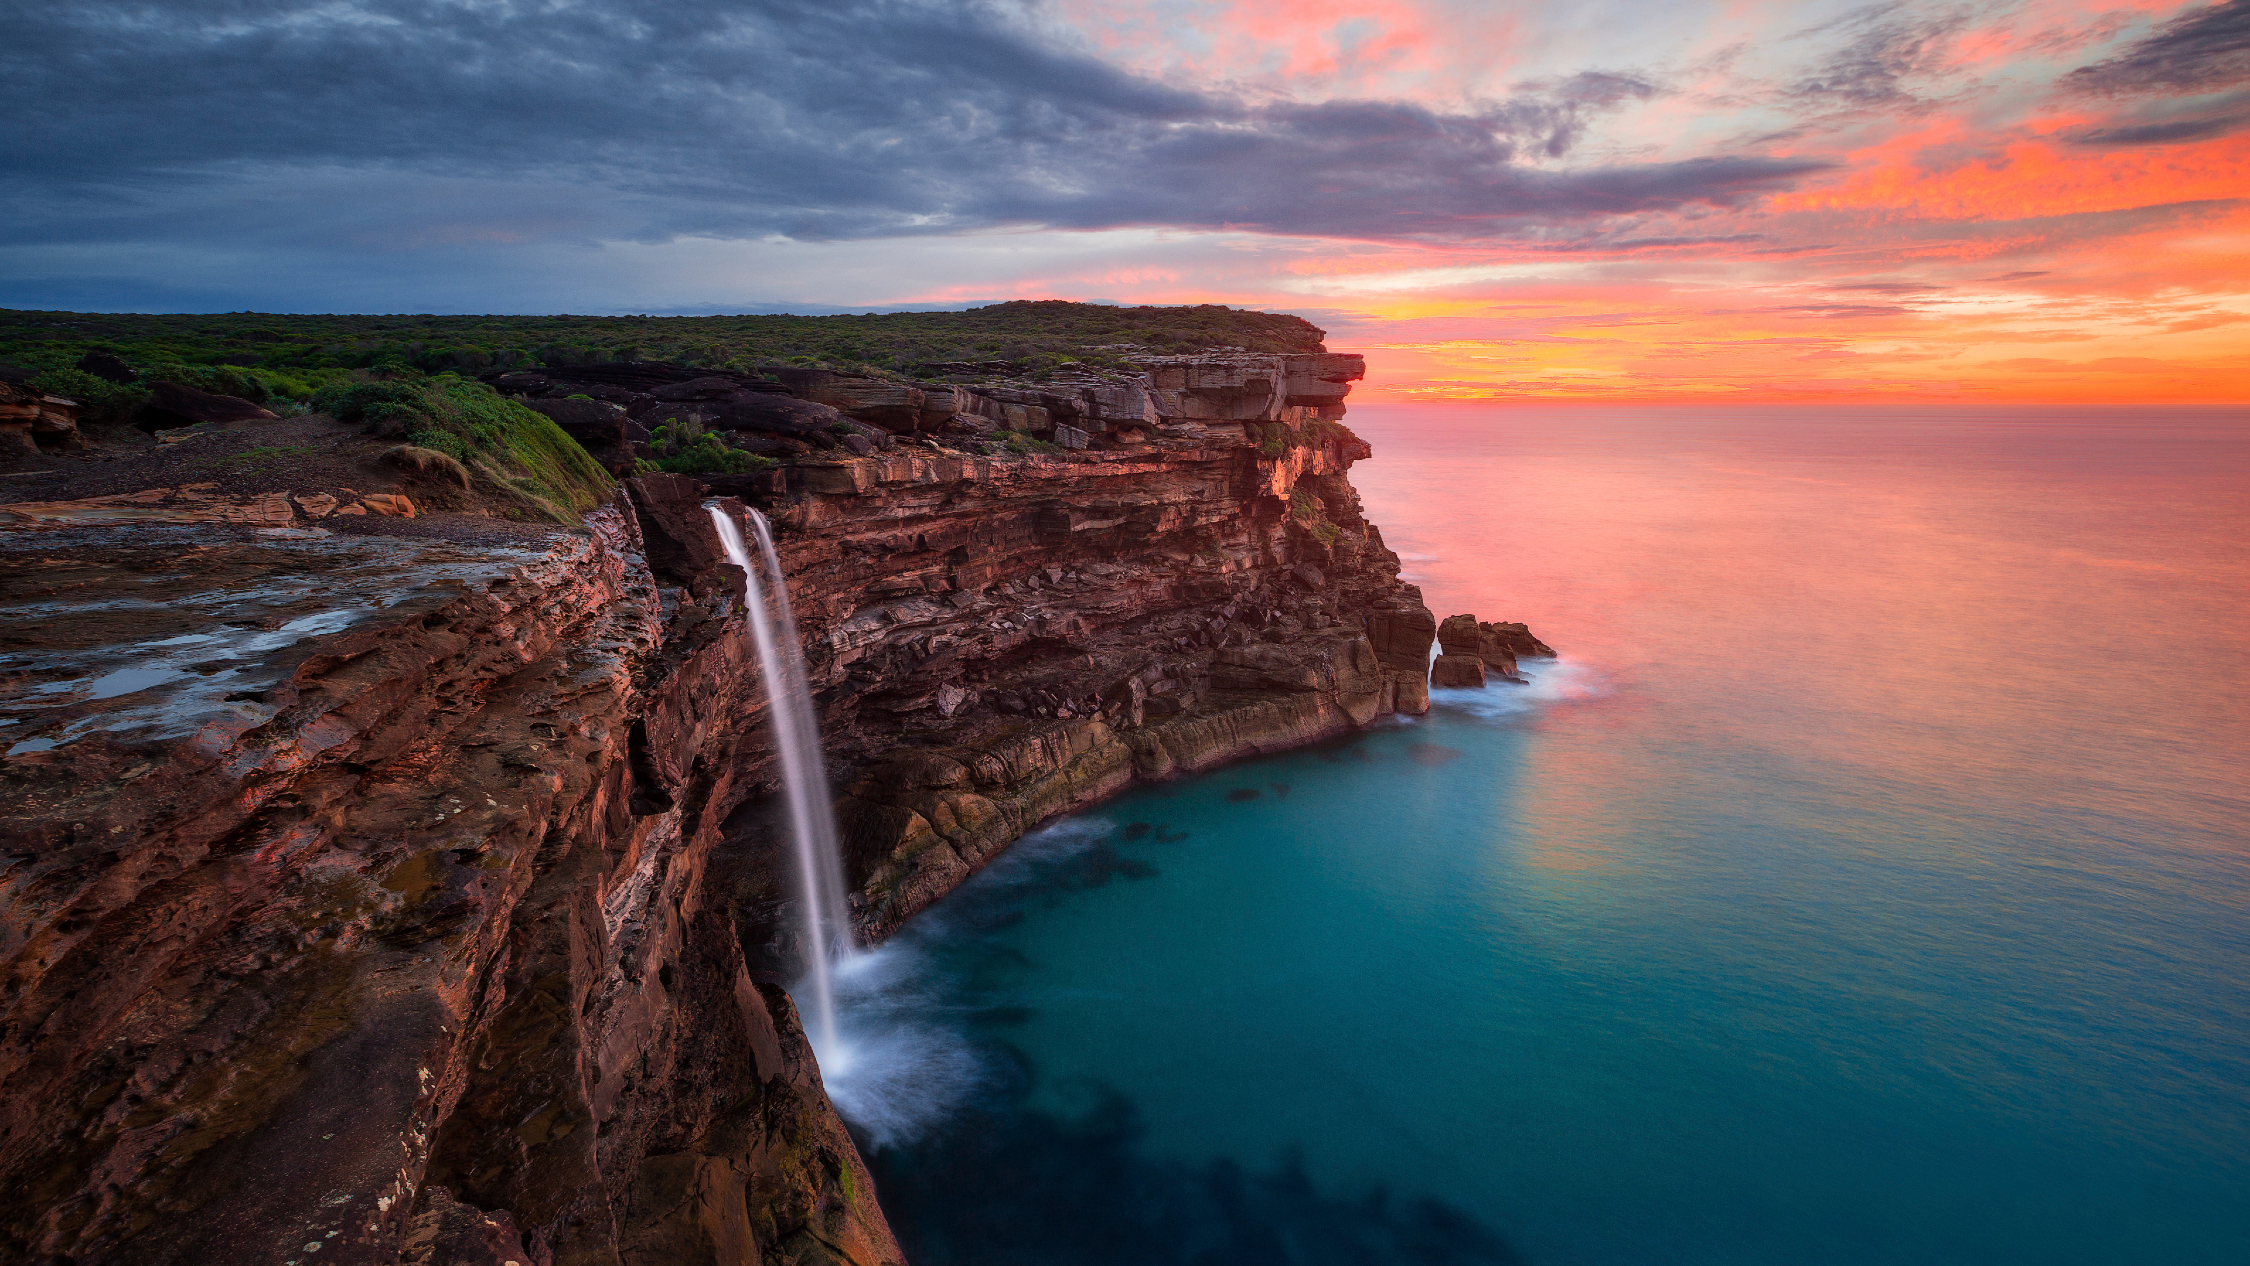 The sun sets over the ocean in the background with Eagle Rock and the Currarrong Falls in the fore.